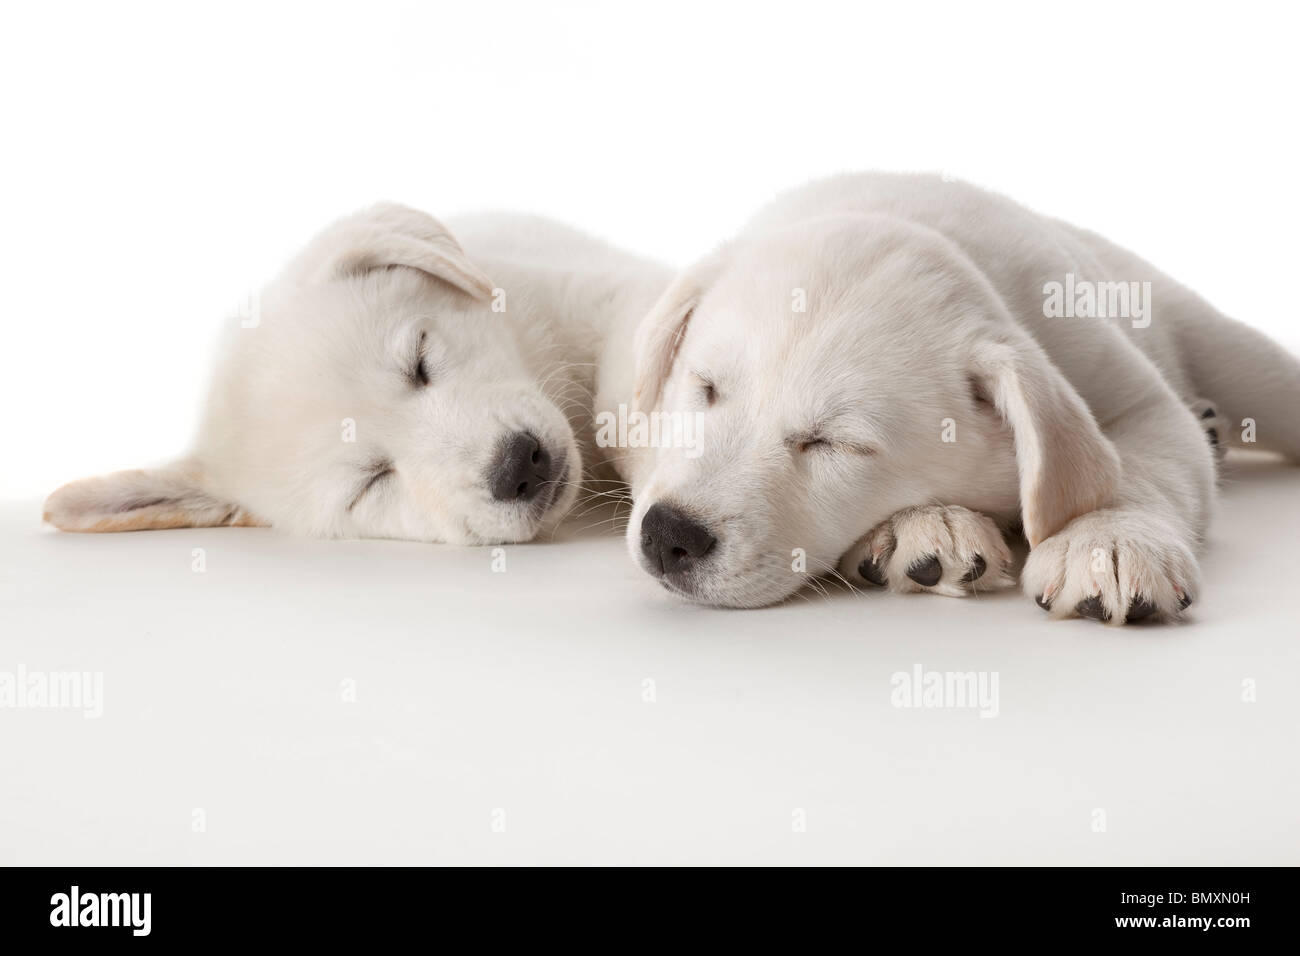 Two cute white puppies sleeping on white background - Stock Image